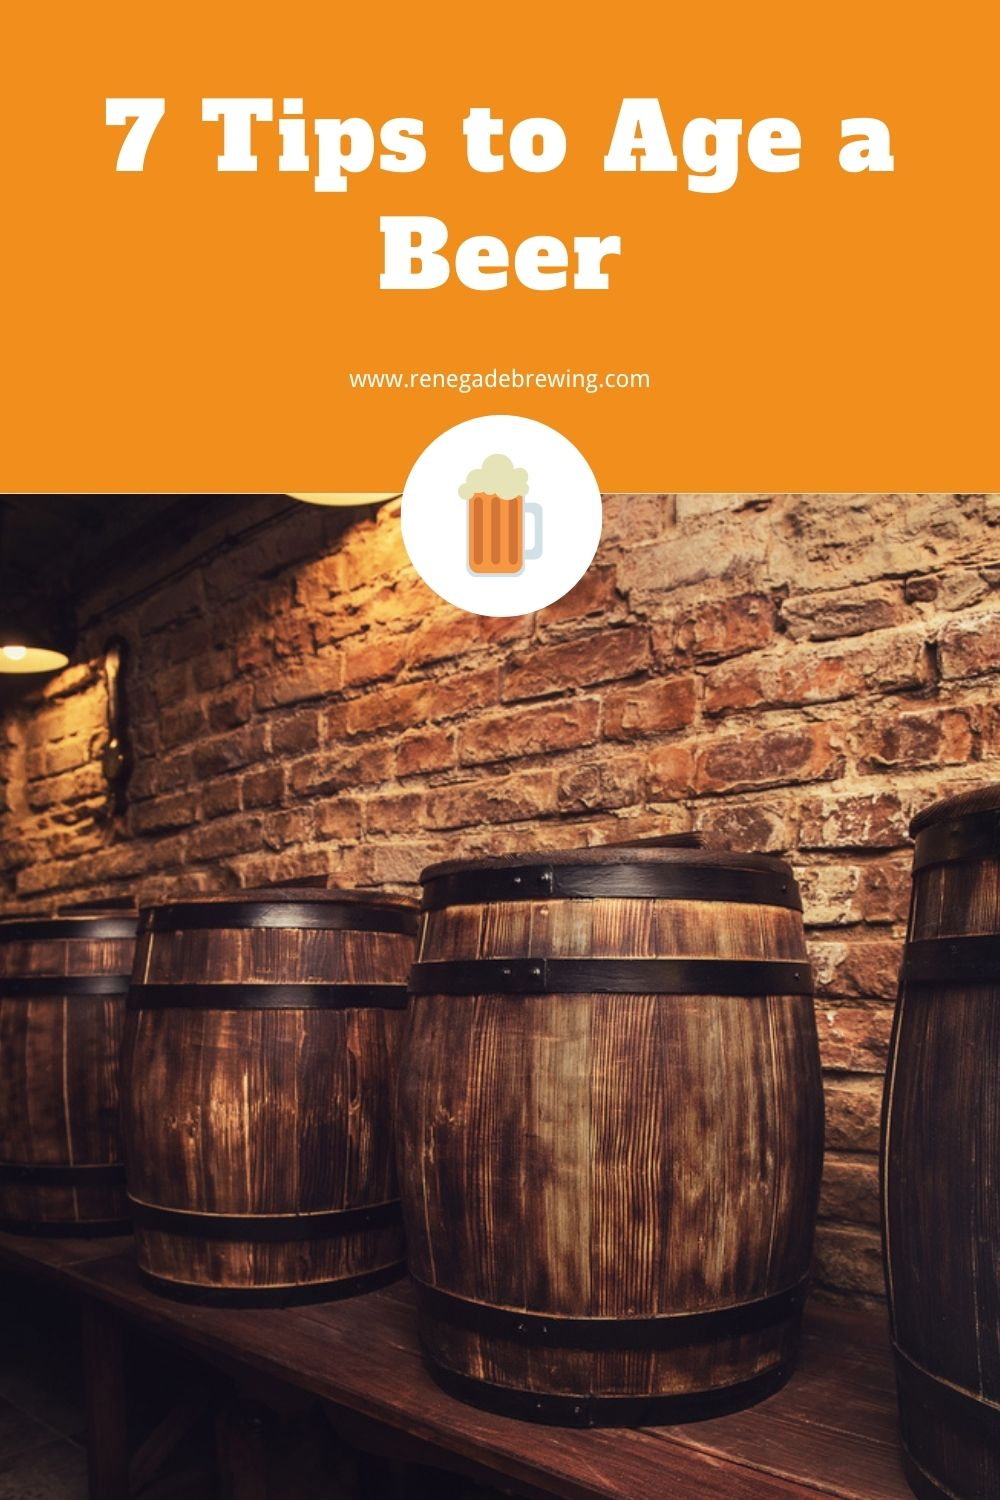 7 Tips to Age a Beer